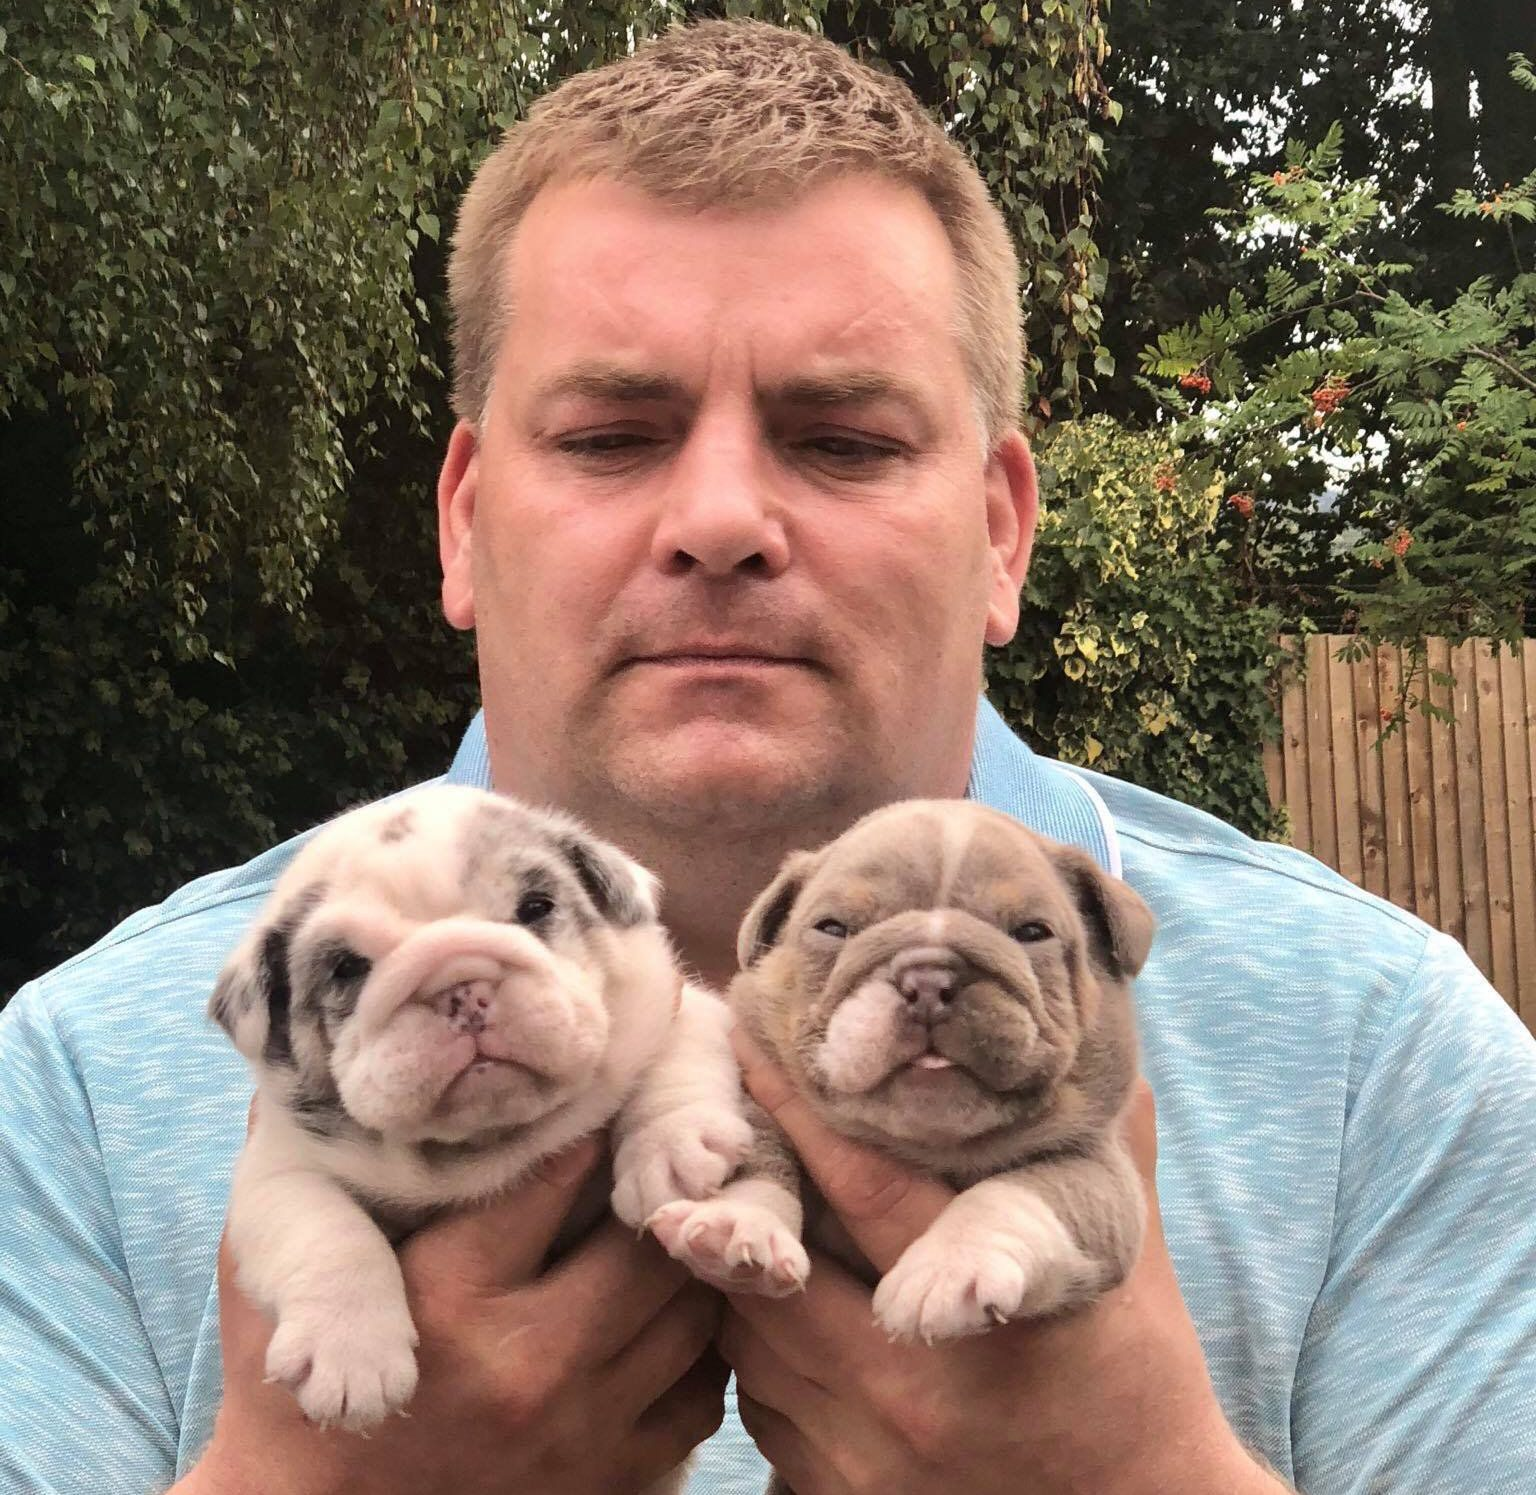 - Picture of Mark Orley, TRIANGLE NEWS 0203 176 0089 // contact@trianglenews.co.uk By Kaisha Langton THE owner of eleven stolen puppies has taken to social media to offer ?50,000 to anyone who can name the thieves who snatched them. Mark Orley decided to take the law into his own hands after someone nabbed the pups. He claims his kids were held at knifepoint in the process - and offered ?50k to anyone who helps identify those responsible. *Full copy available via Triangle News*